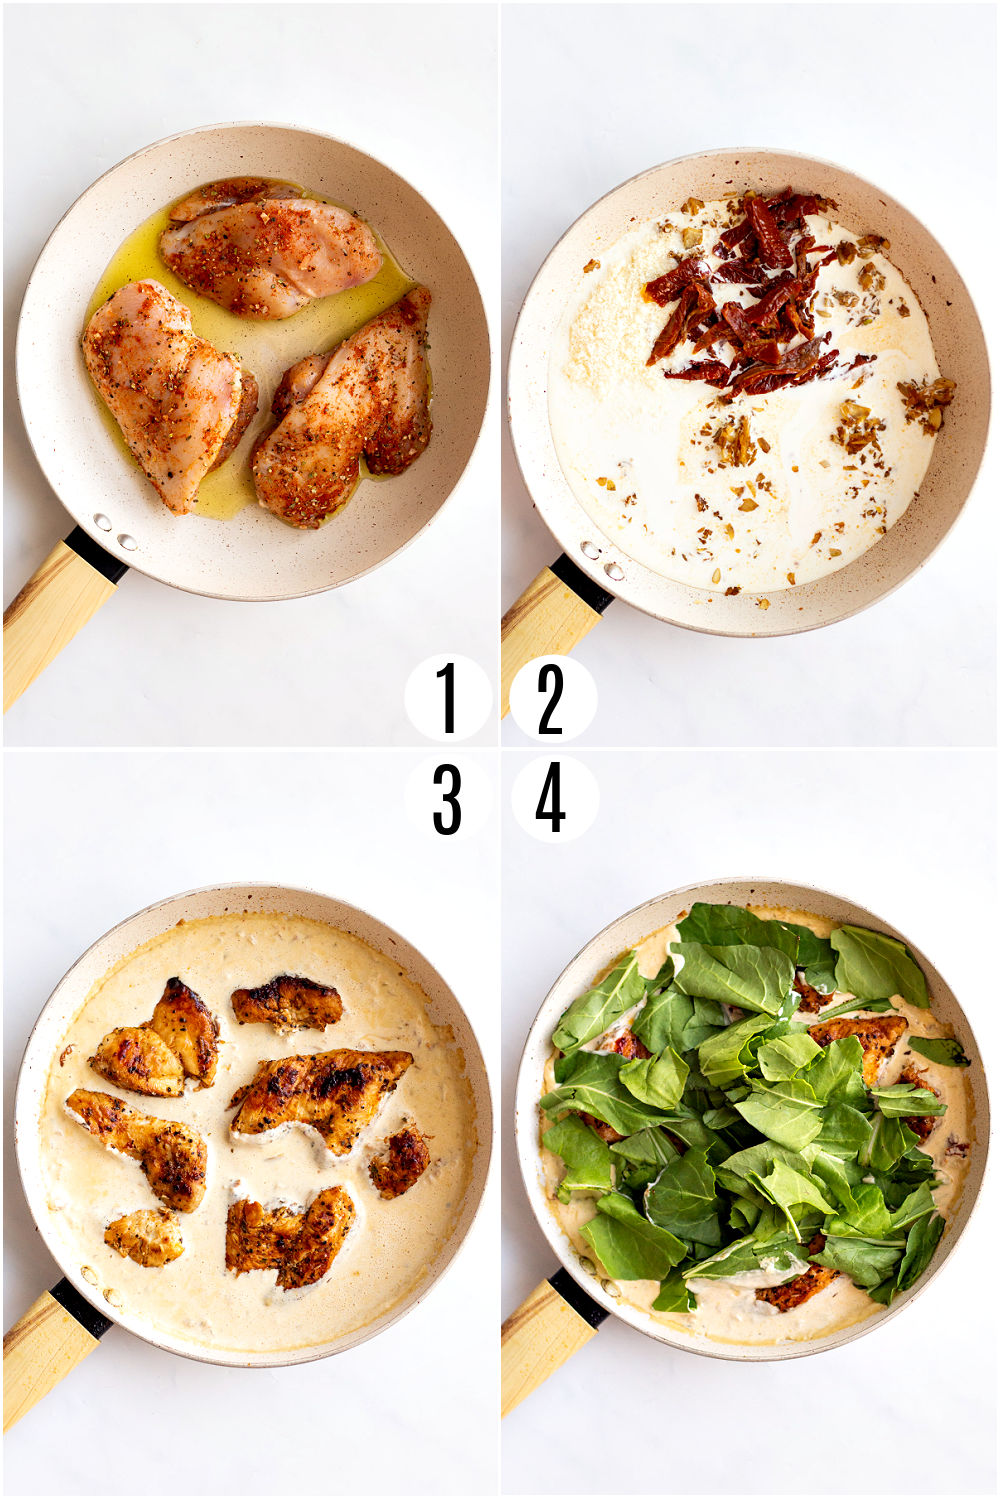 Step by step photos showing how to make creamy tuscan chicken.